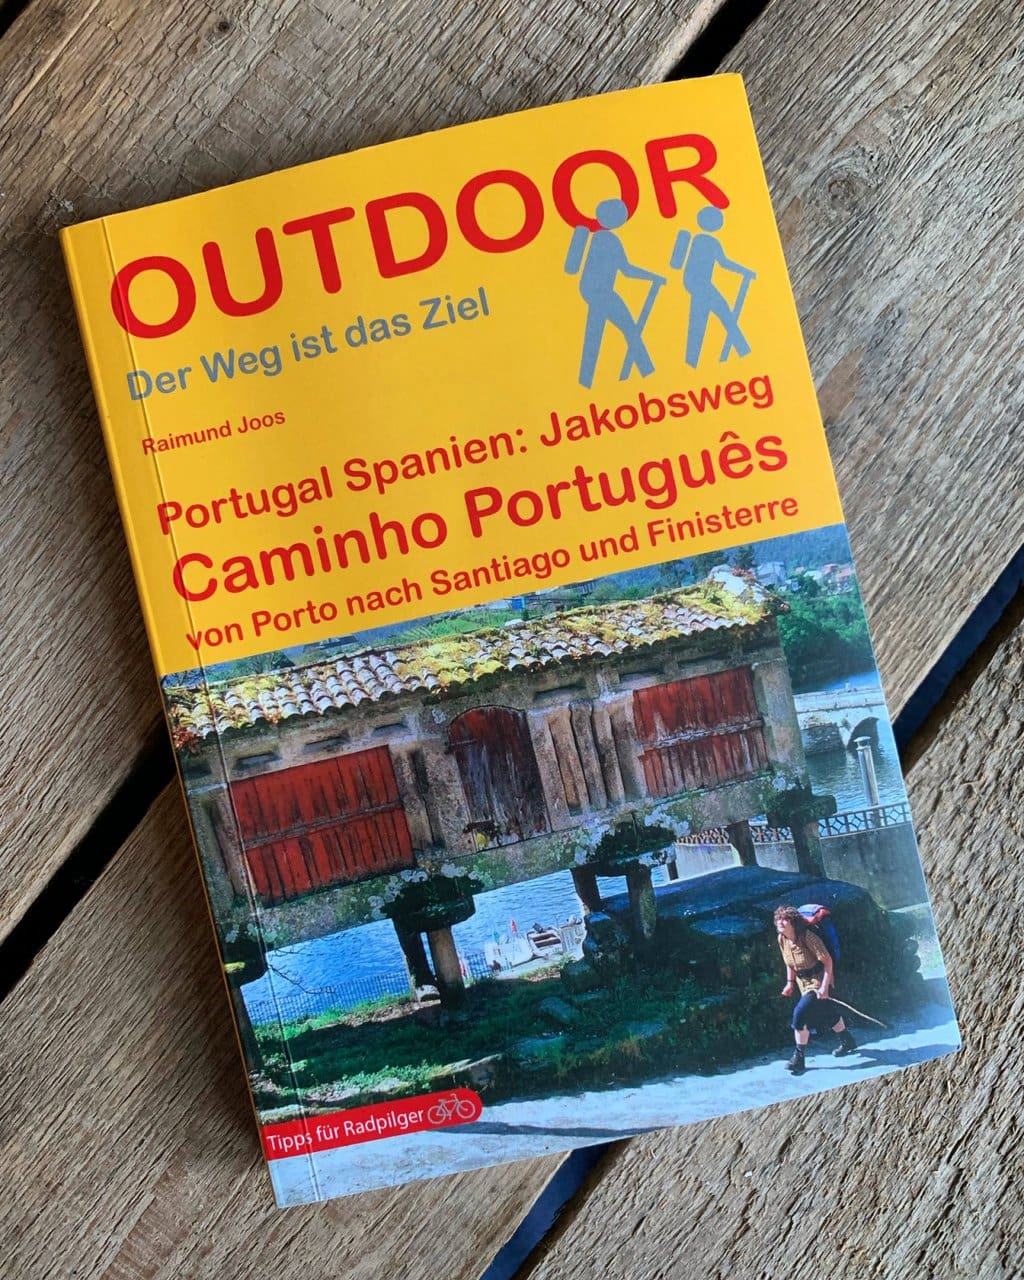 My Camino Português – Coming soon…